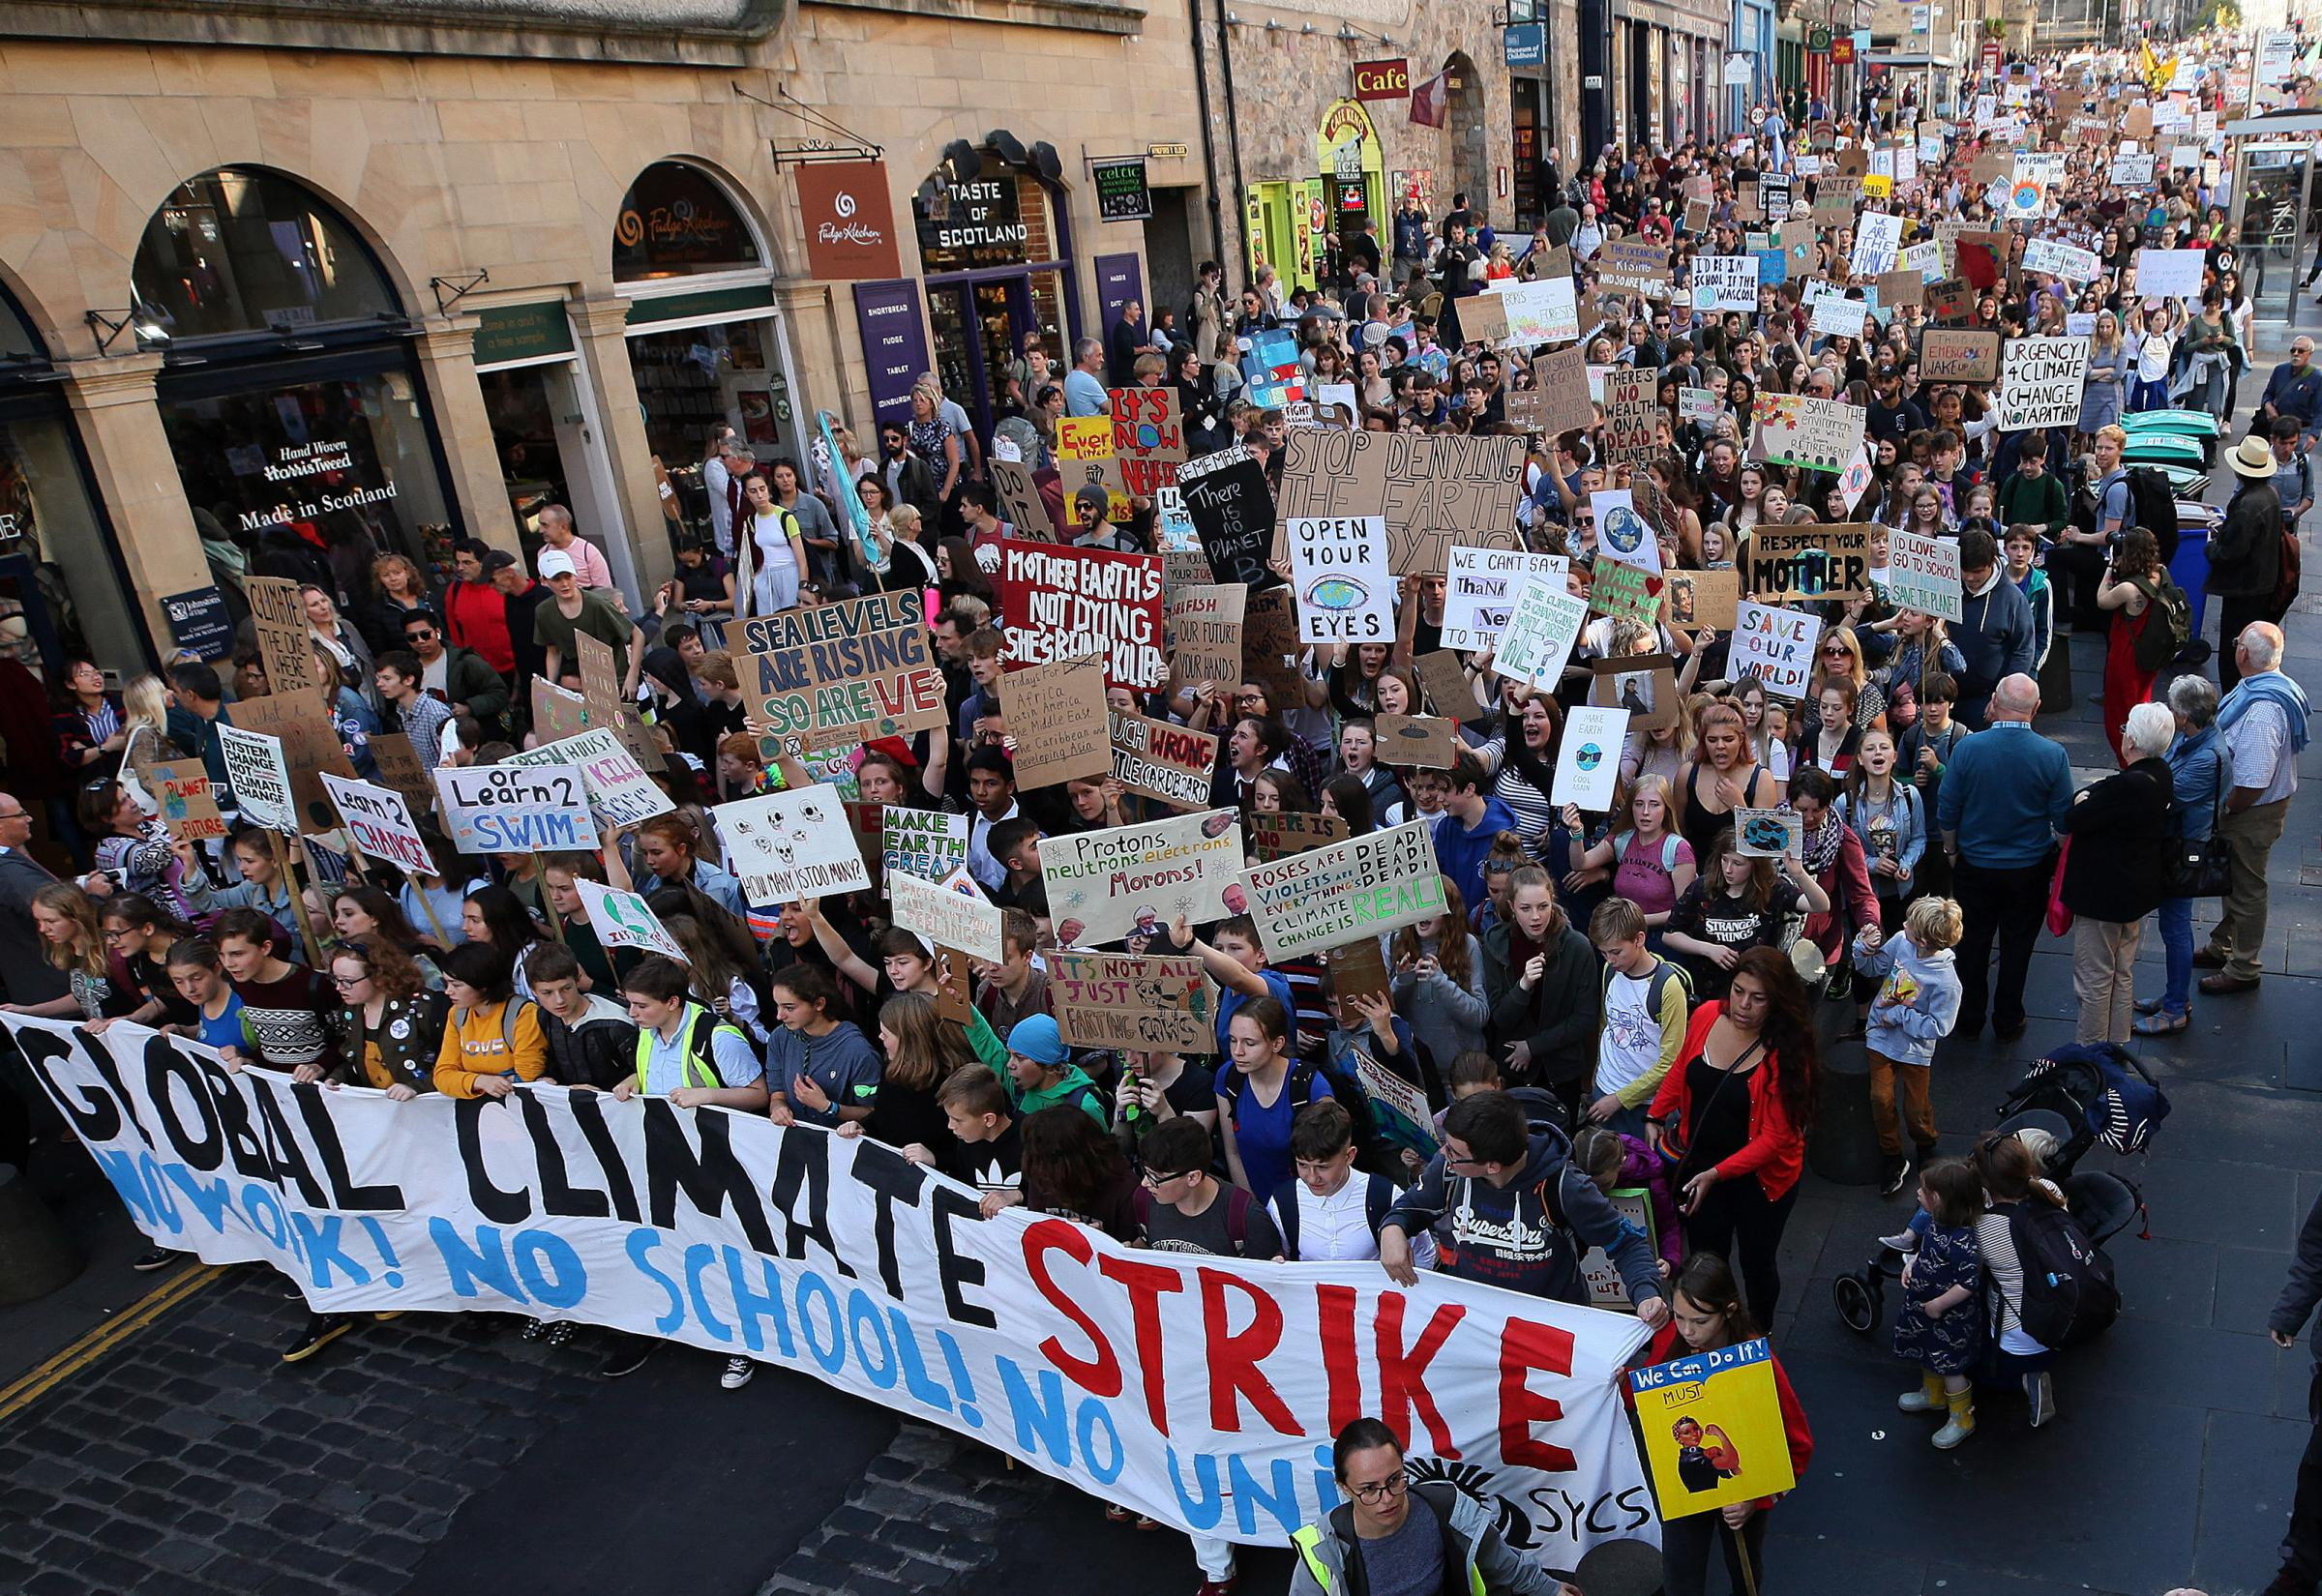 Scottish cities join worldwide climate change strike revolution